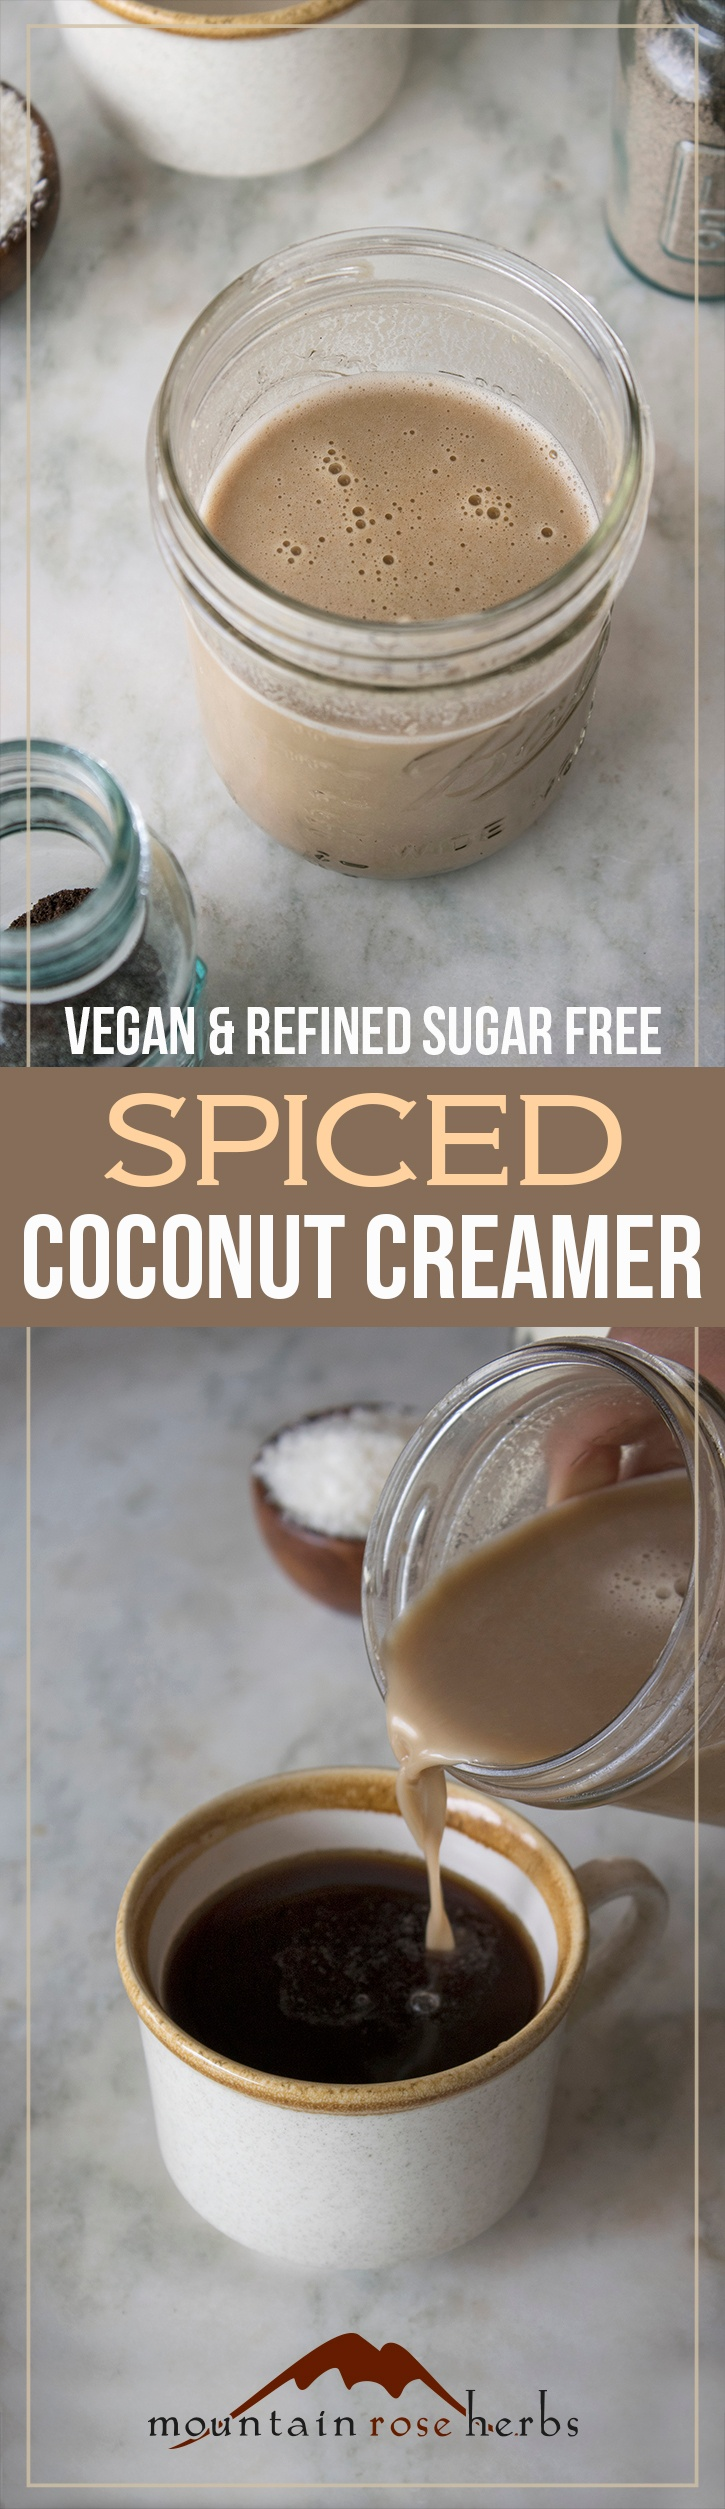 Coconut Creamer Recipe by Mountain Rose Herbs